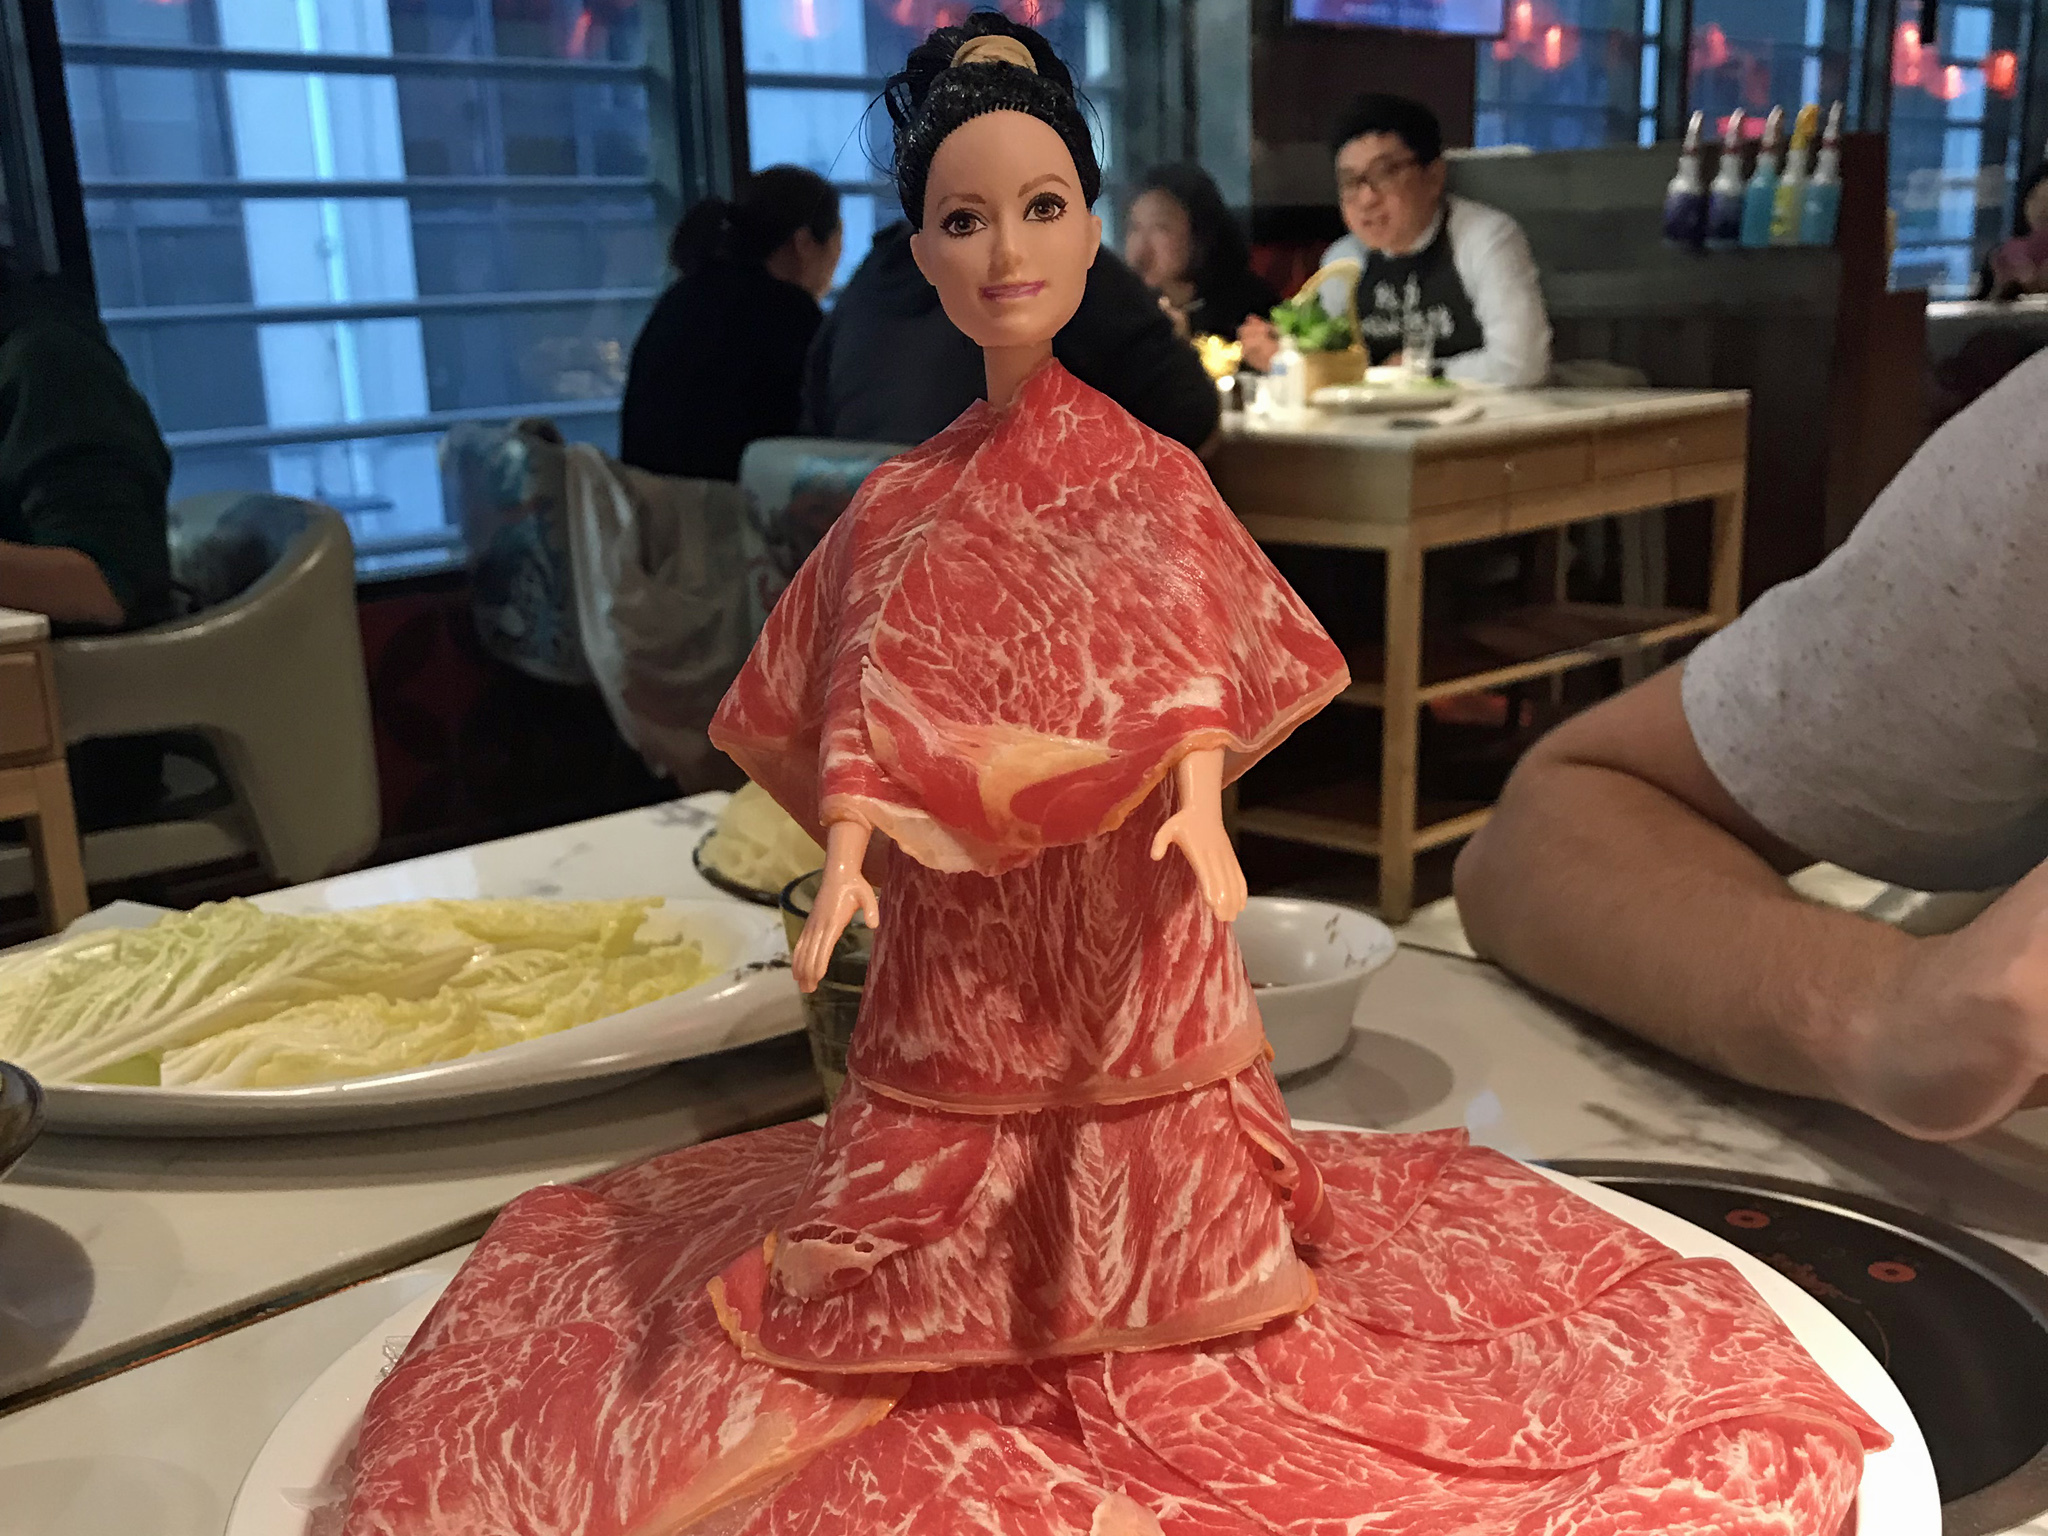 Meat Barbie at Spice World